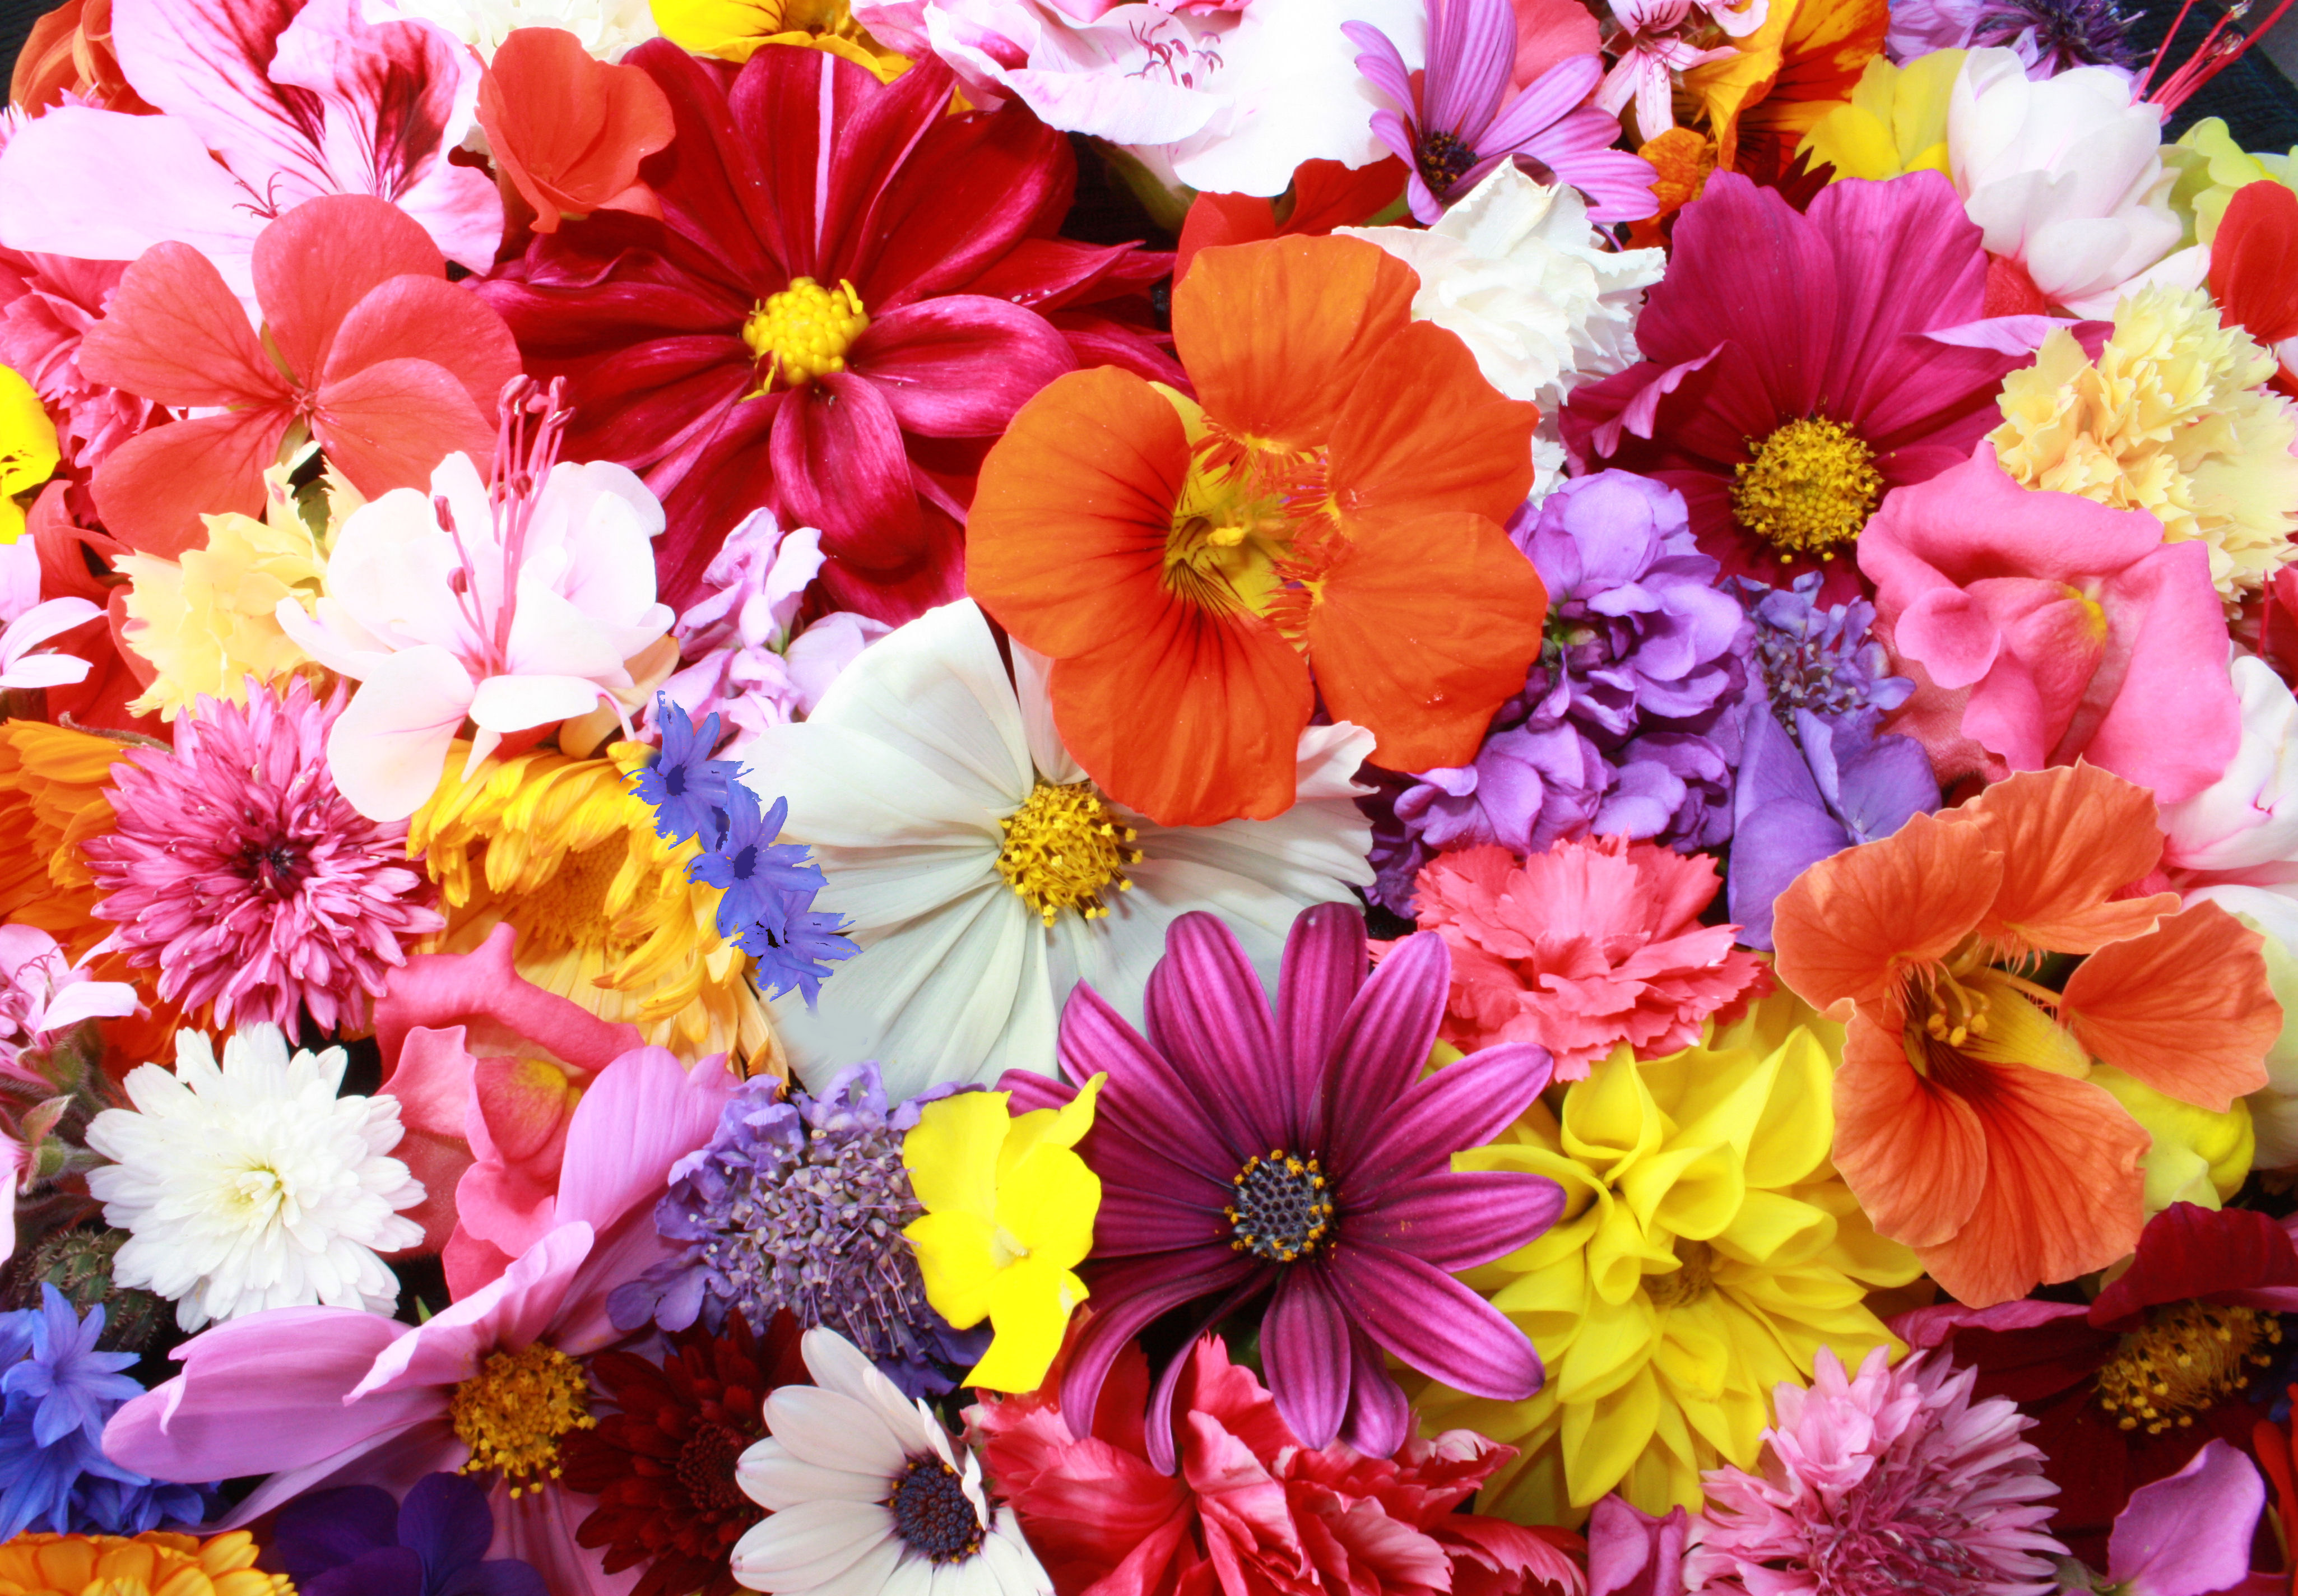 Free Colorful Flower Wallpaper Downloads: 2048x1152 Colorful HD Flowers 2048x1152 Resolution HD 4k